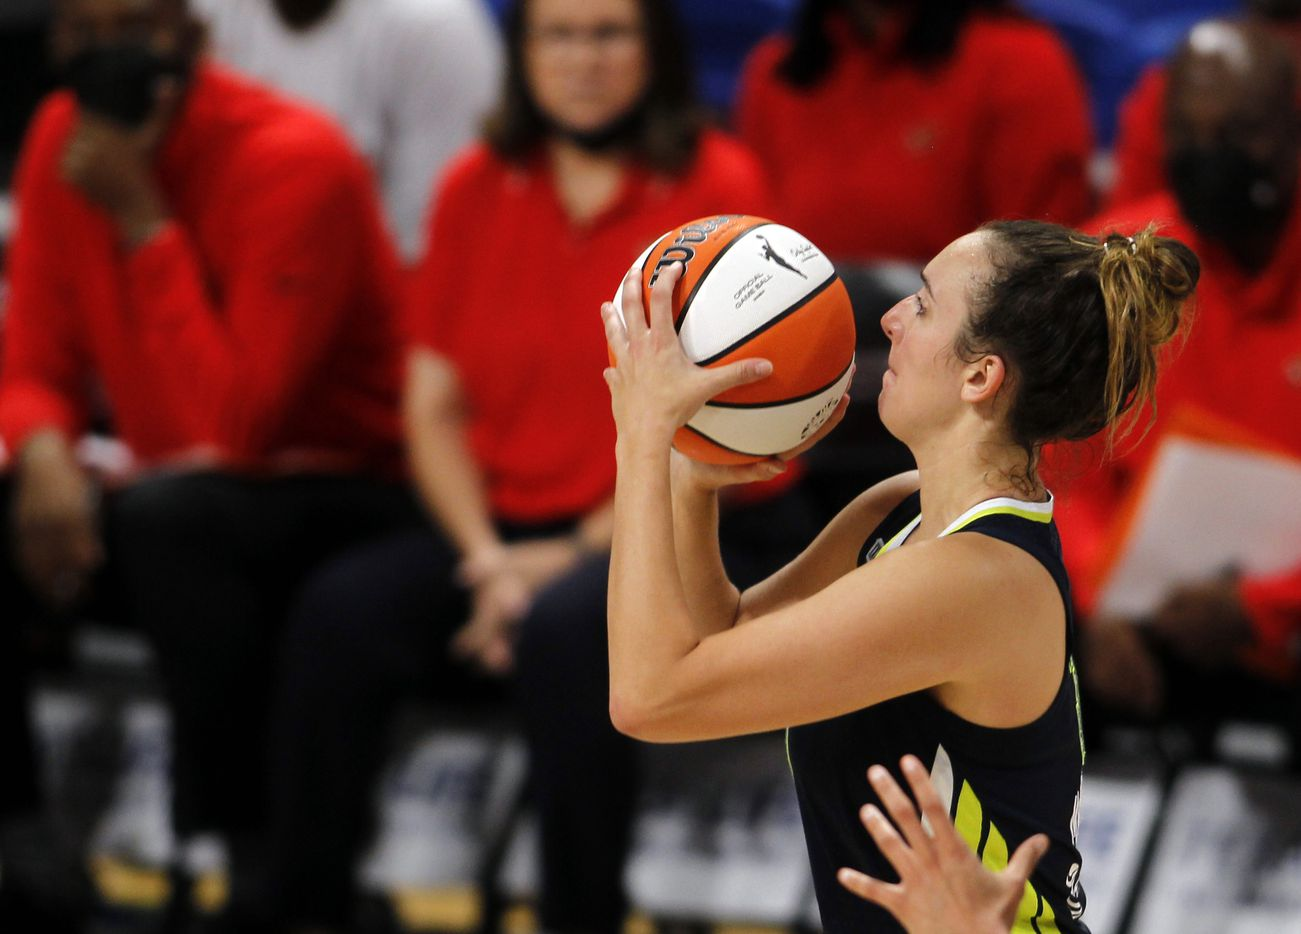 Dallas Wings guard Marina Mabrey (3) eyes a shot during first half action against the Indiana Fever. The Dallas Wings hosted the Indiana Fever for their WNBA game held at College Park Center on the campus of UT-Arlington on August 20, 2021. (Steve Hamm/ Special Contributor)